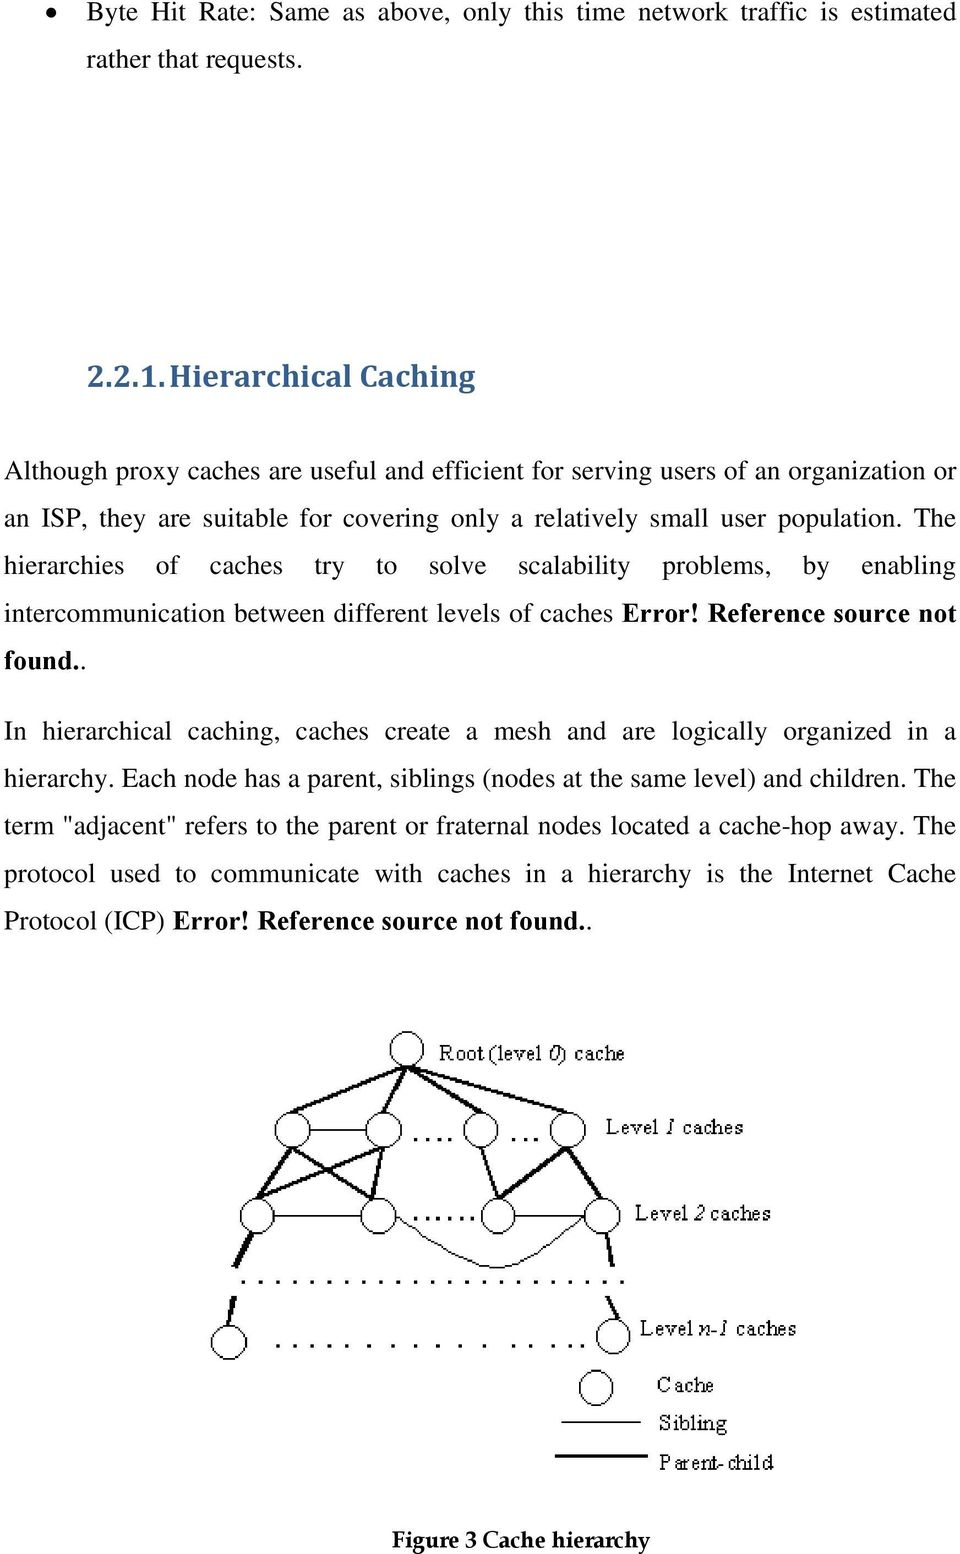 The hierarchies of caches try to solve scalability problems, by enabling intercommunication between different levels of caches Error! Reference source not found.